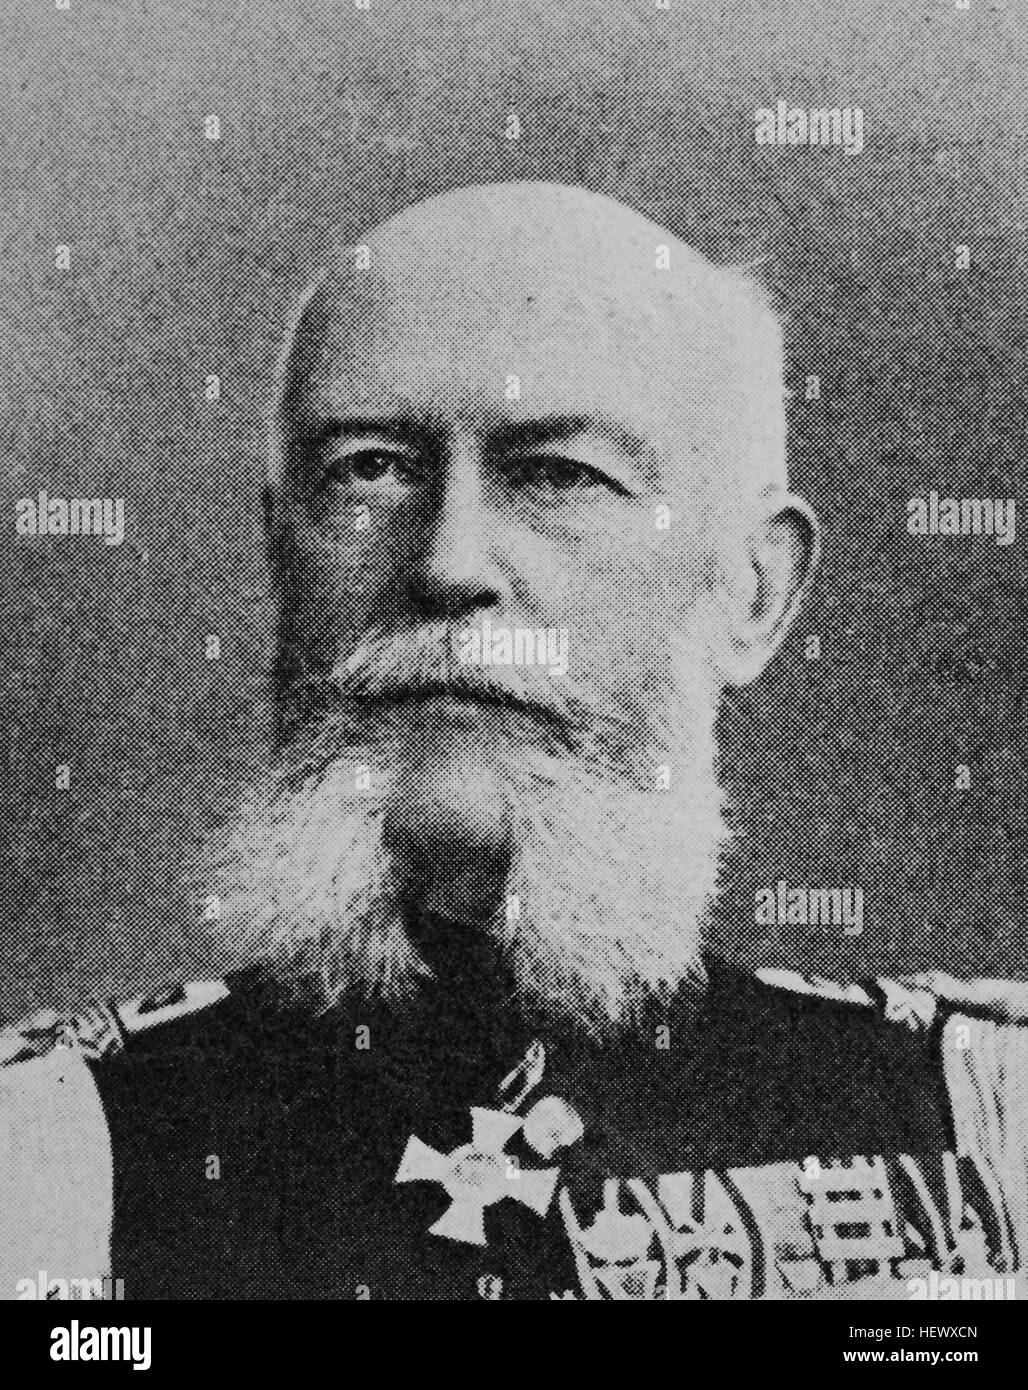 Oscar von Lettow-Vorbeck, born 1839, Military writer, picture from 1895, digital improved - Stock Image